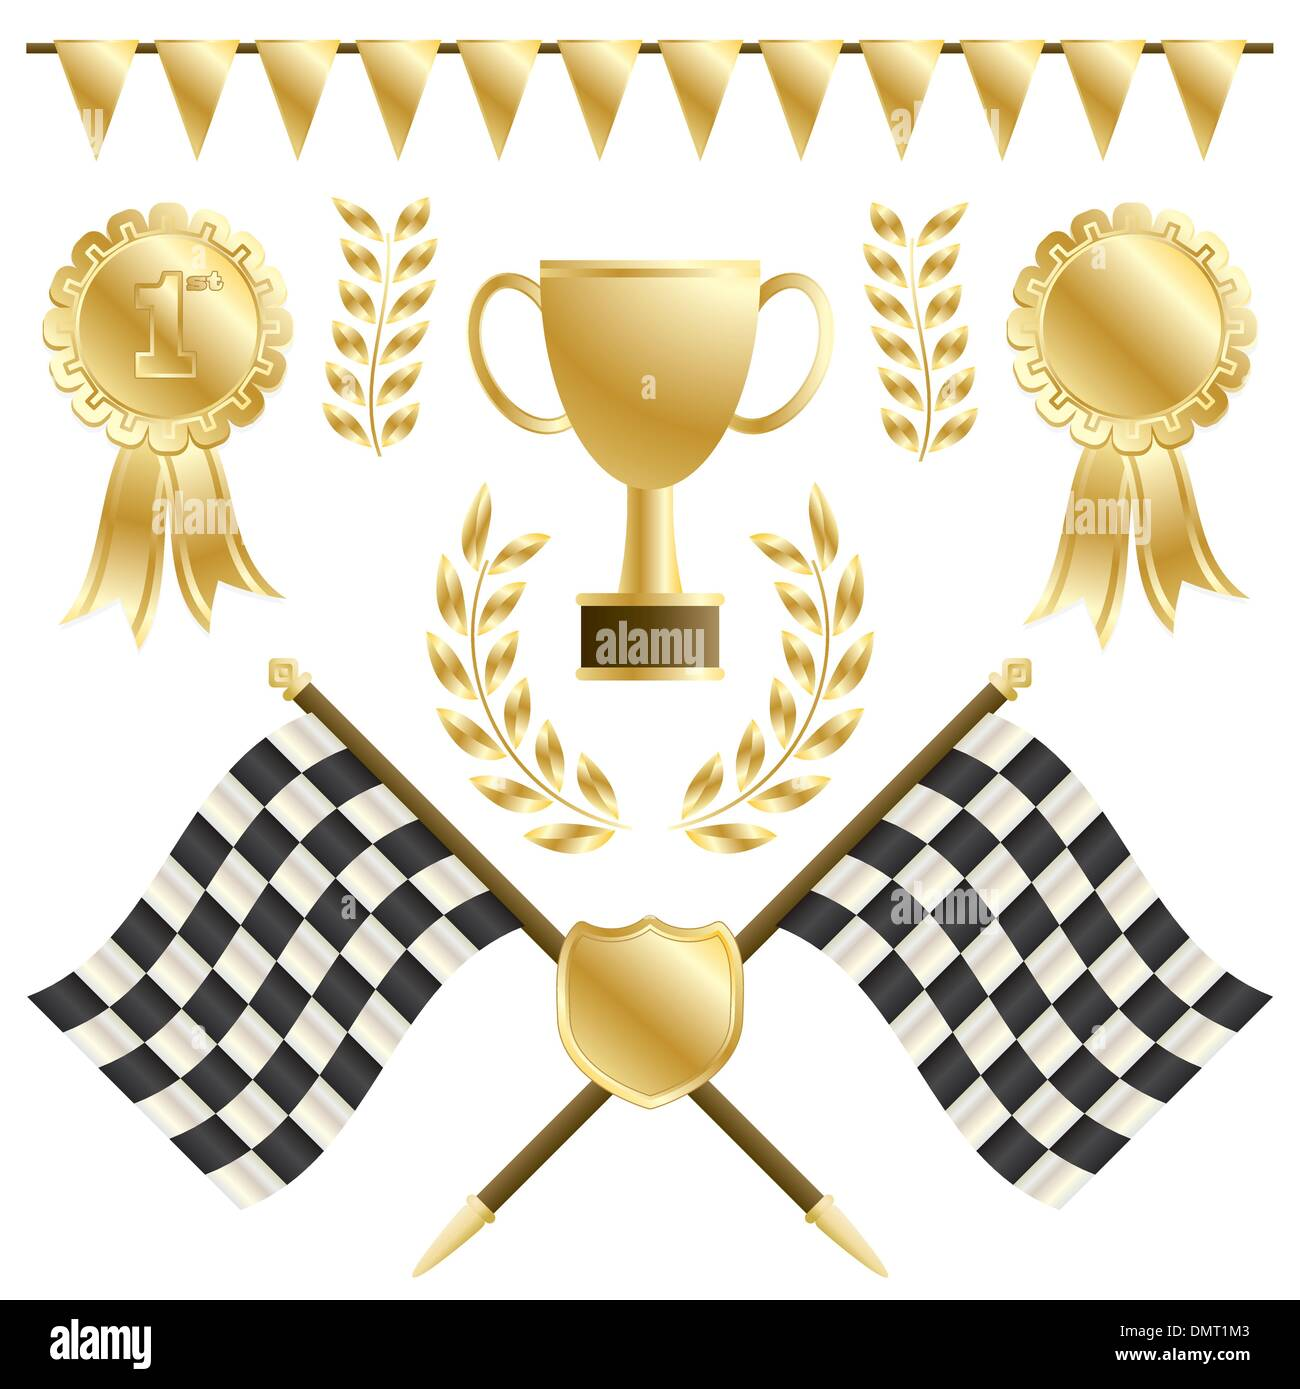 chequered flags - Stock Image